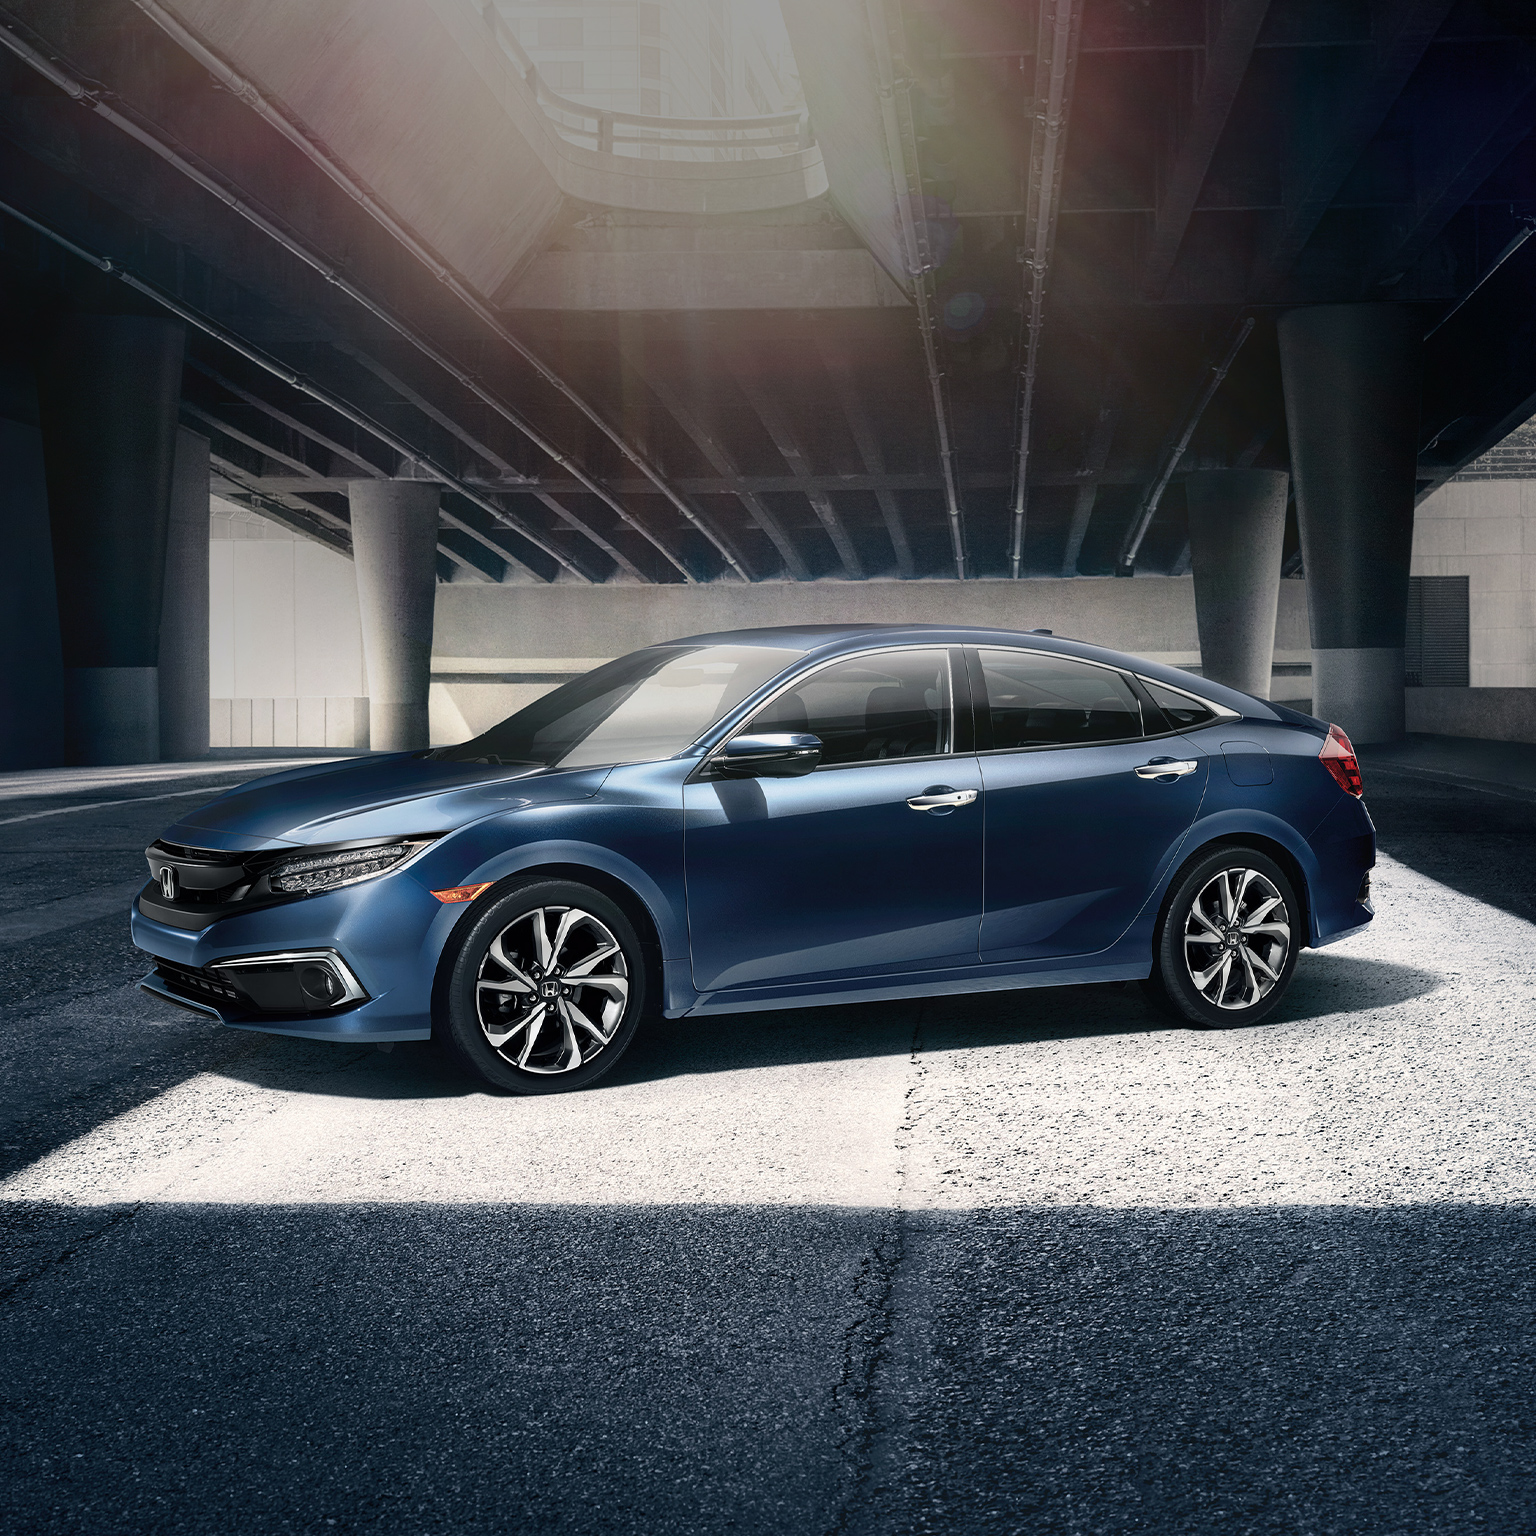 Honda Civic New >> 2020 Civic Sedan Restyled Sporty Design Honda